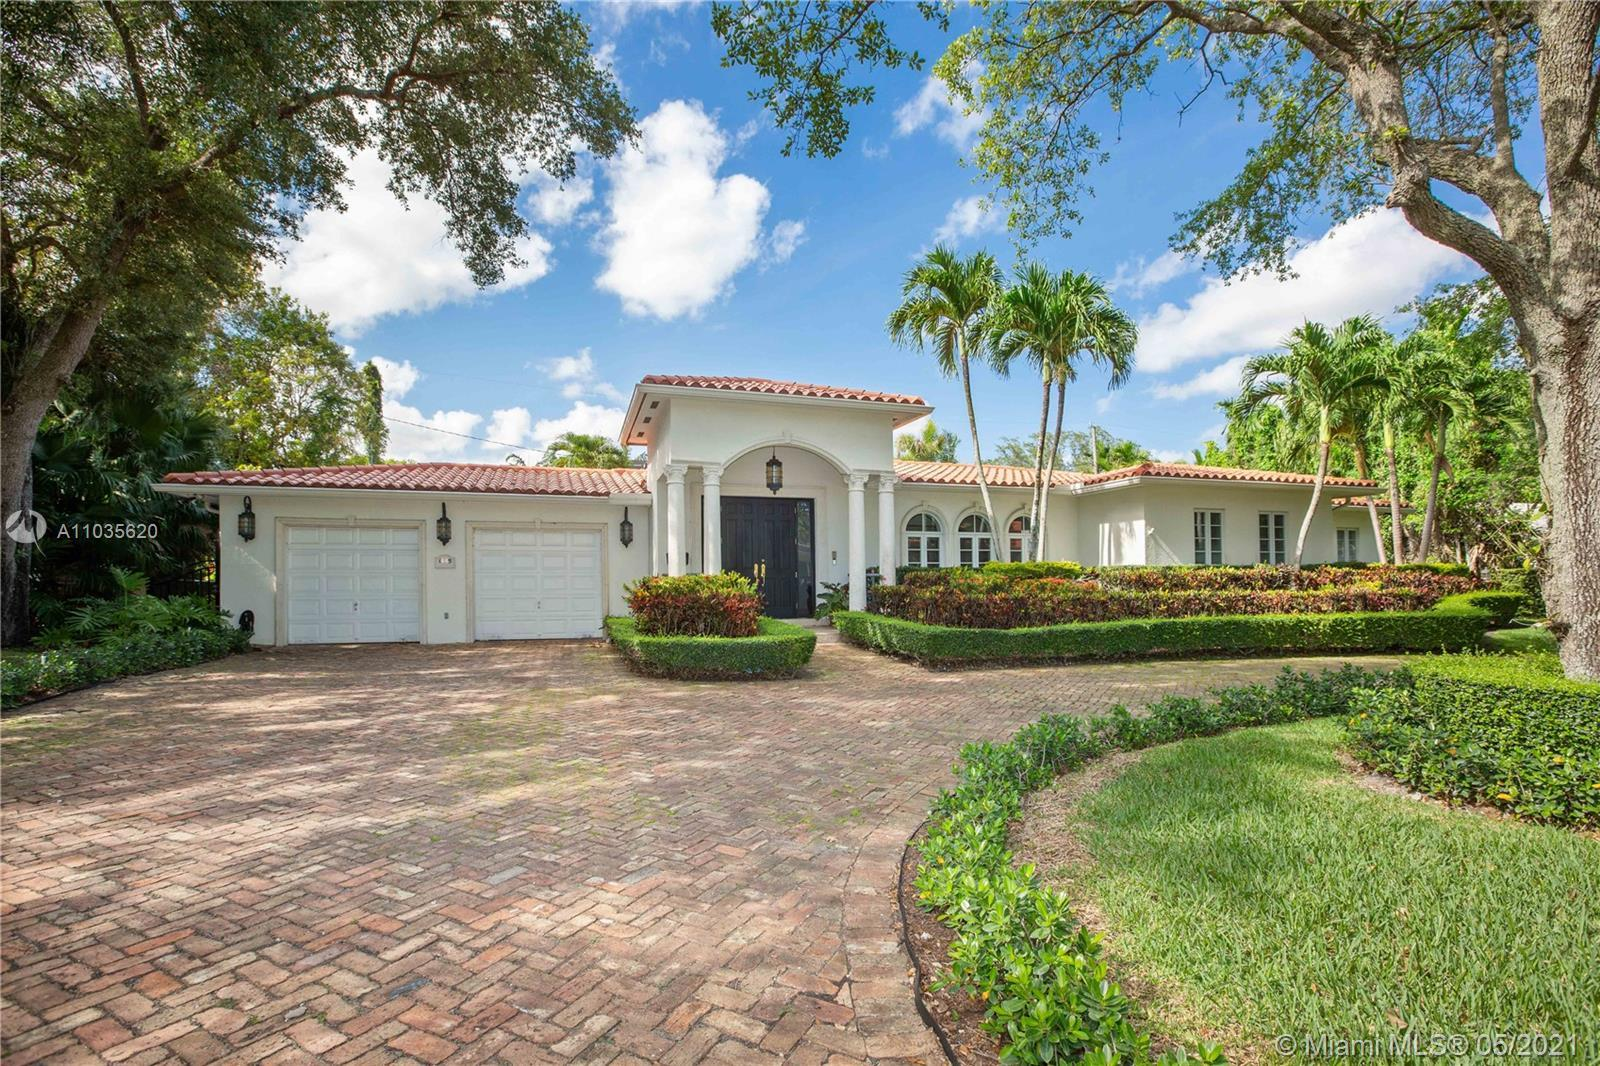 Beautiful Mediterranean Home in Coral Gables. 4-bedrrom, 3.5 baths on a large 12,500 sq.ft. lot. Thi